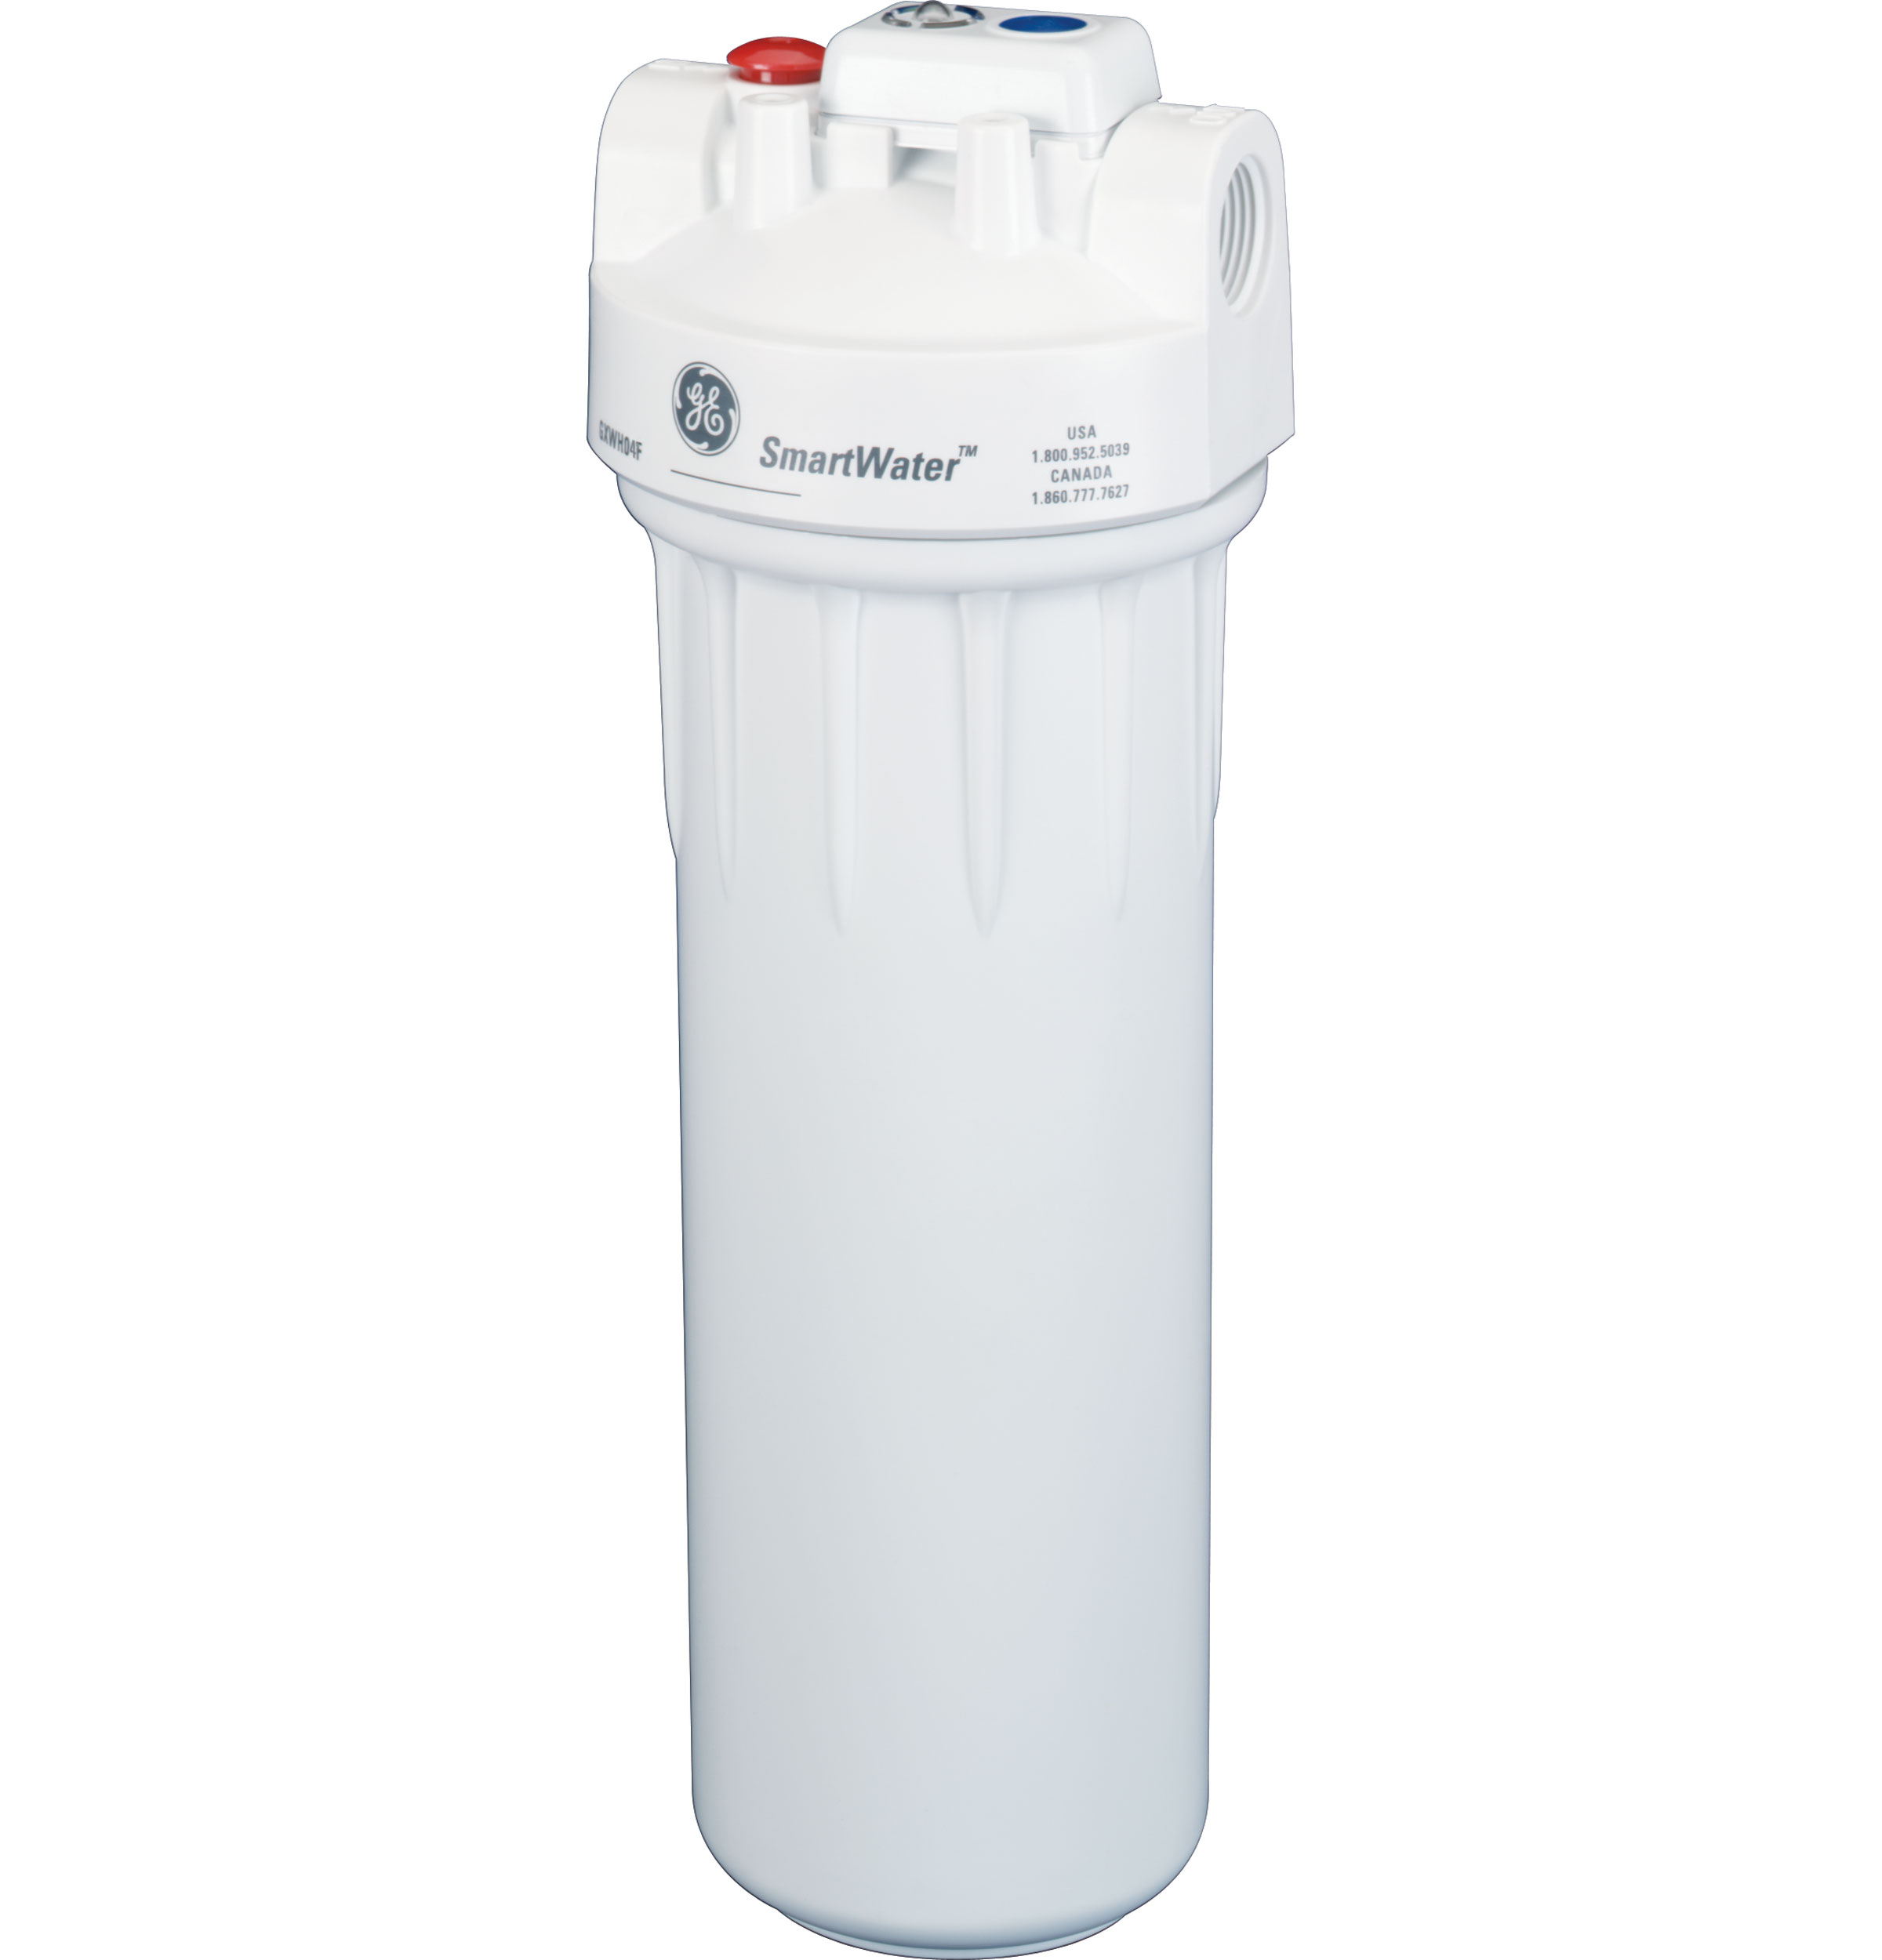 GXWH04F WHOLE HOME WATER FILTRATION SYSTEM